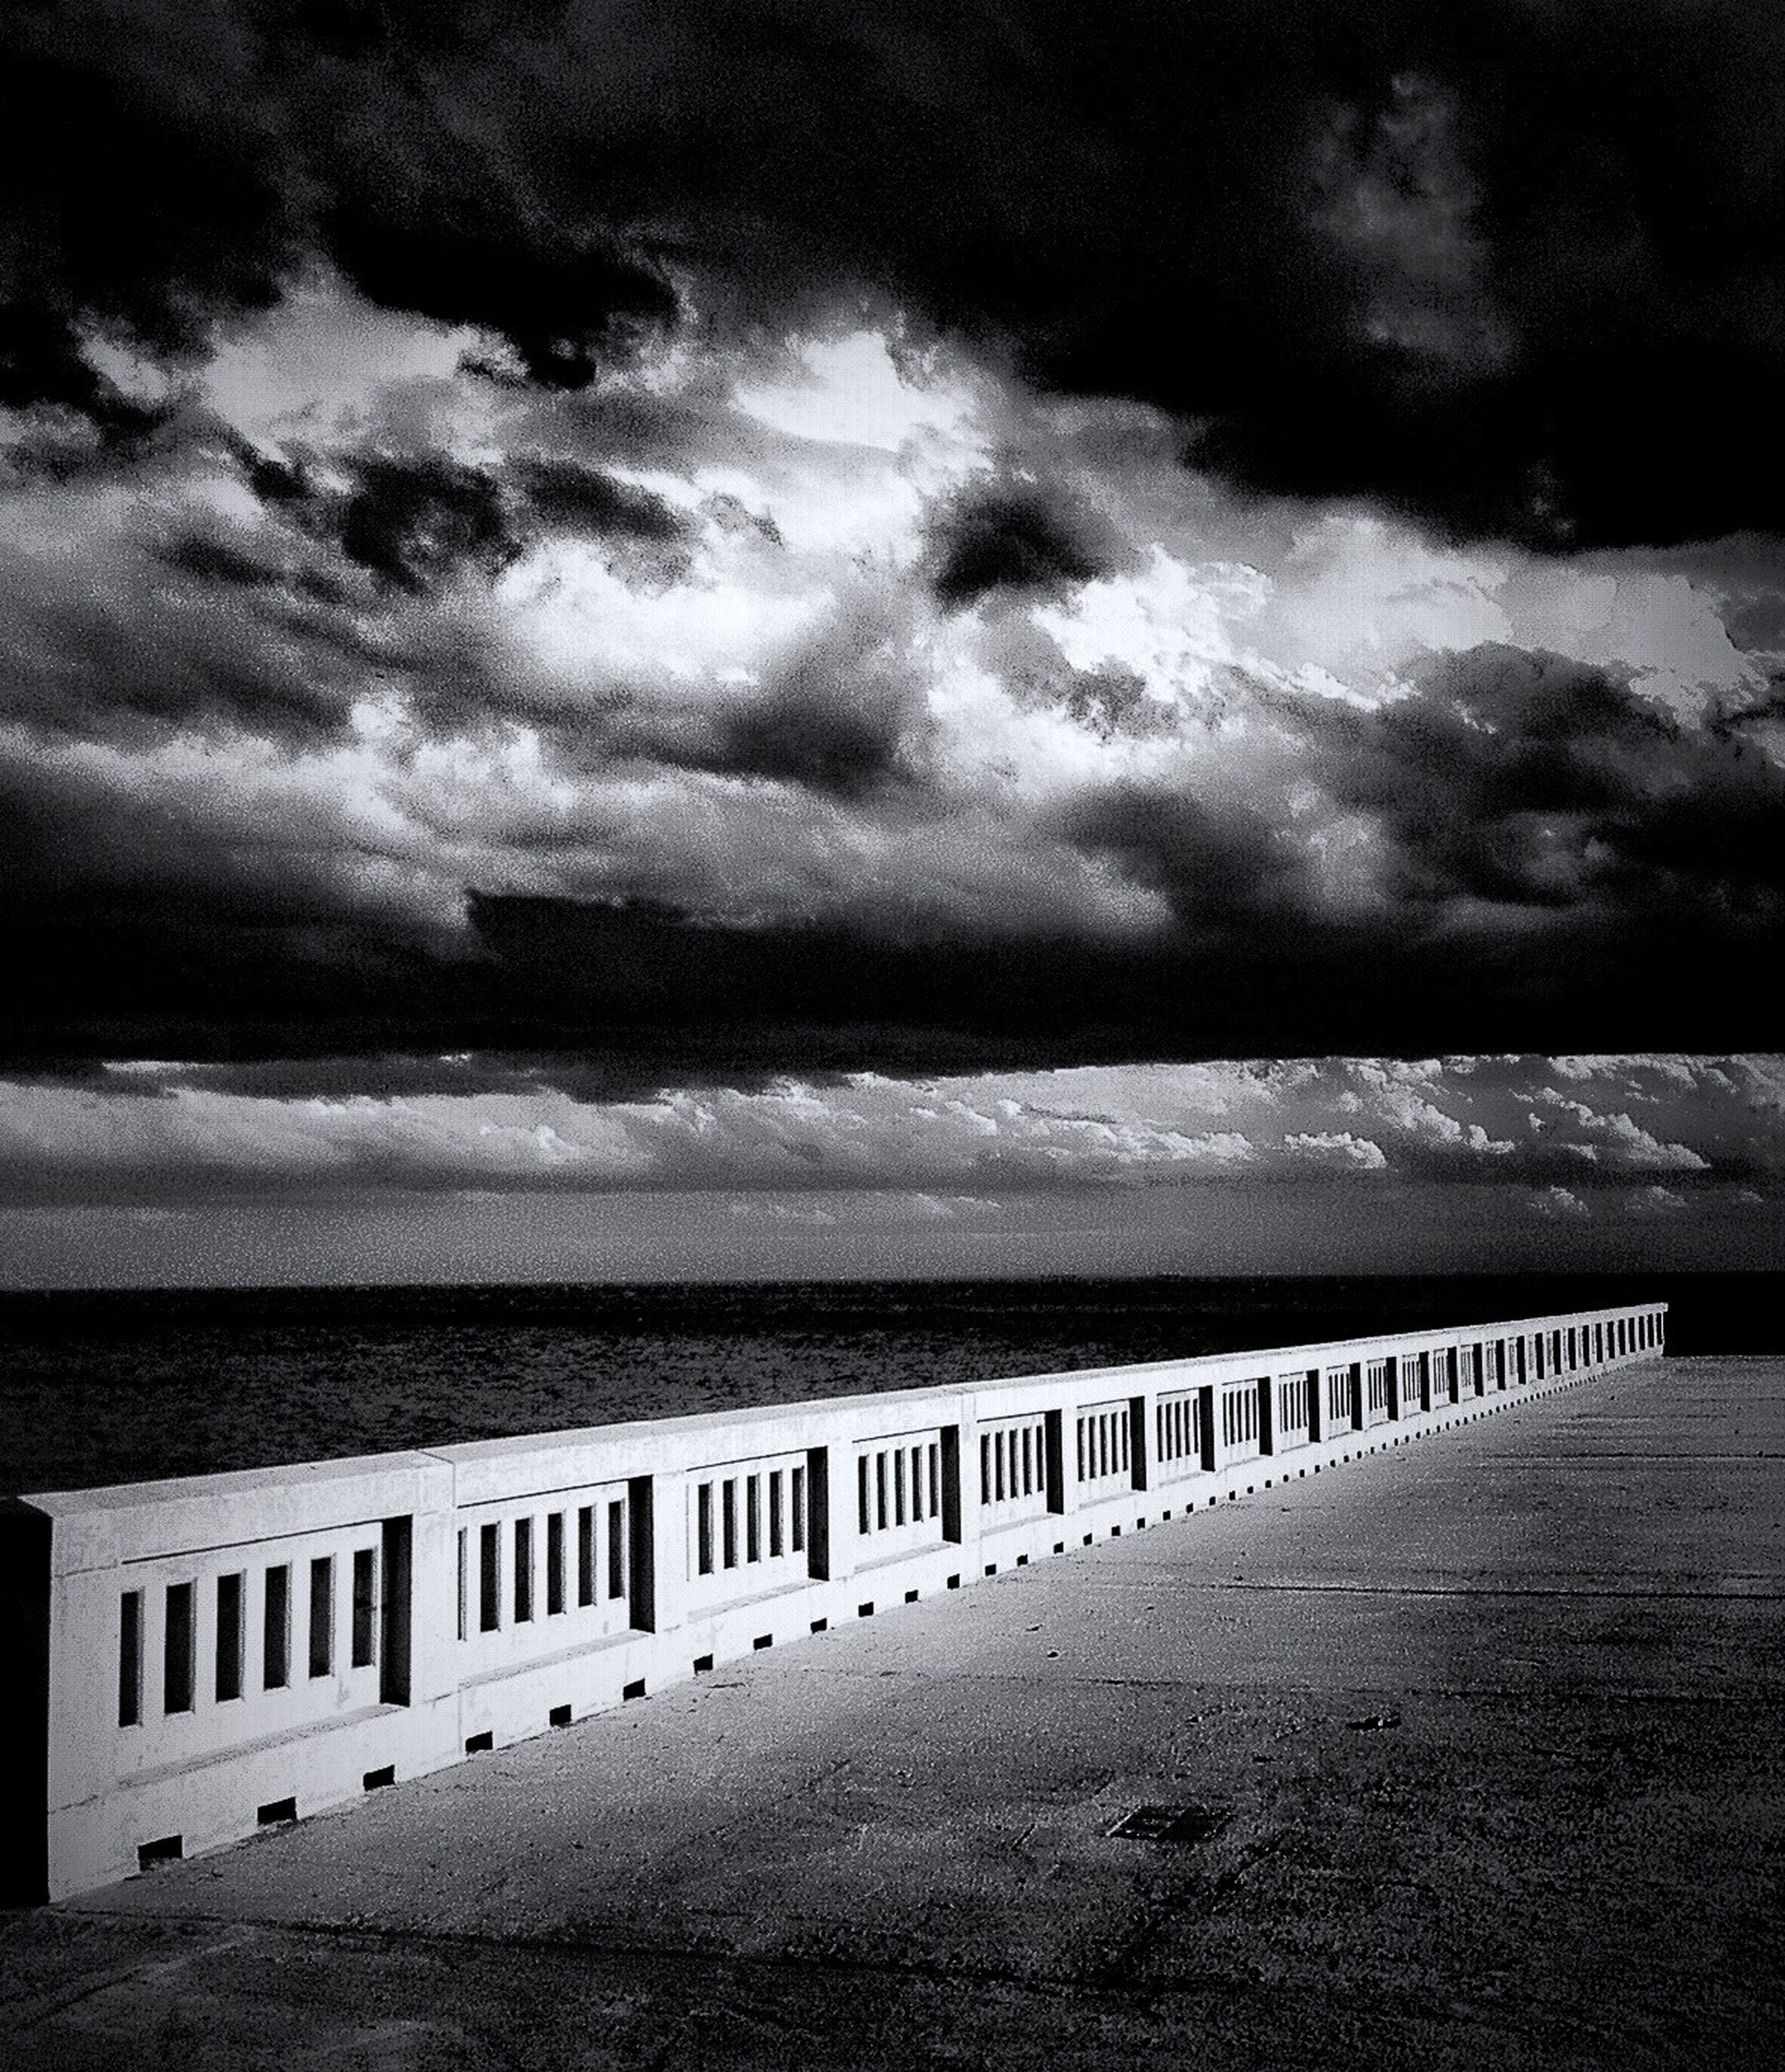 sea, sky, water, cloud - sky, horizon over water, tranquil scene, tranquility, scenics, cloudy, beach, beauty in nature, nature, railing, pier, cloud, weather, shore, idyllic, overcast, dusk